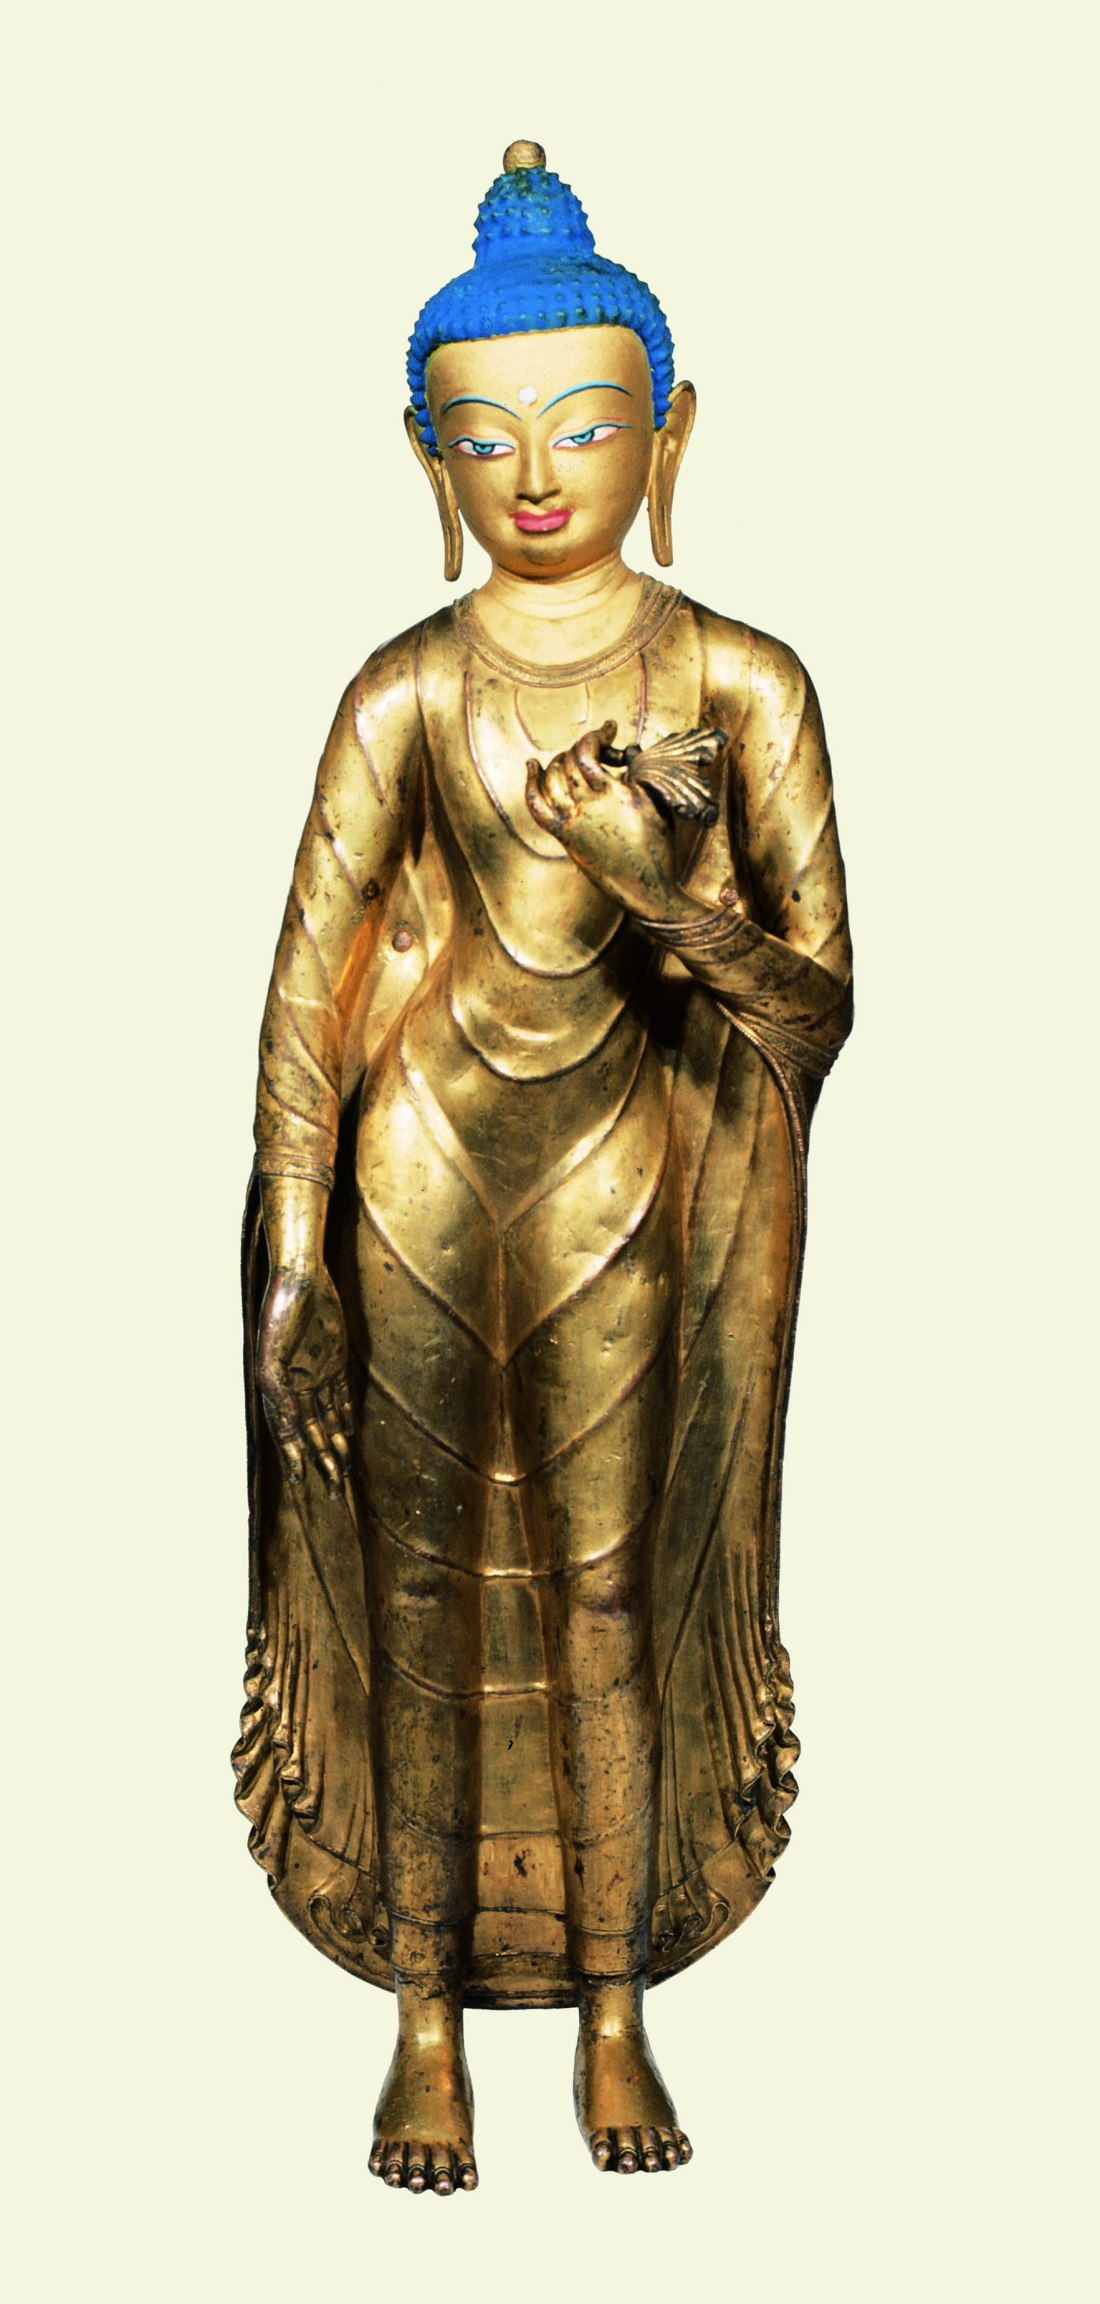 buddha-sakyamuni-nepal-transitional-period-1112-century-jok_144-c-copy